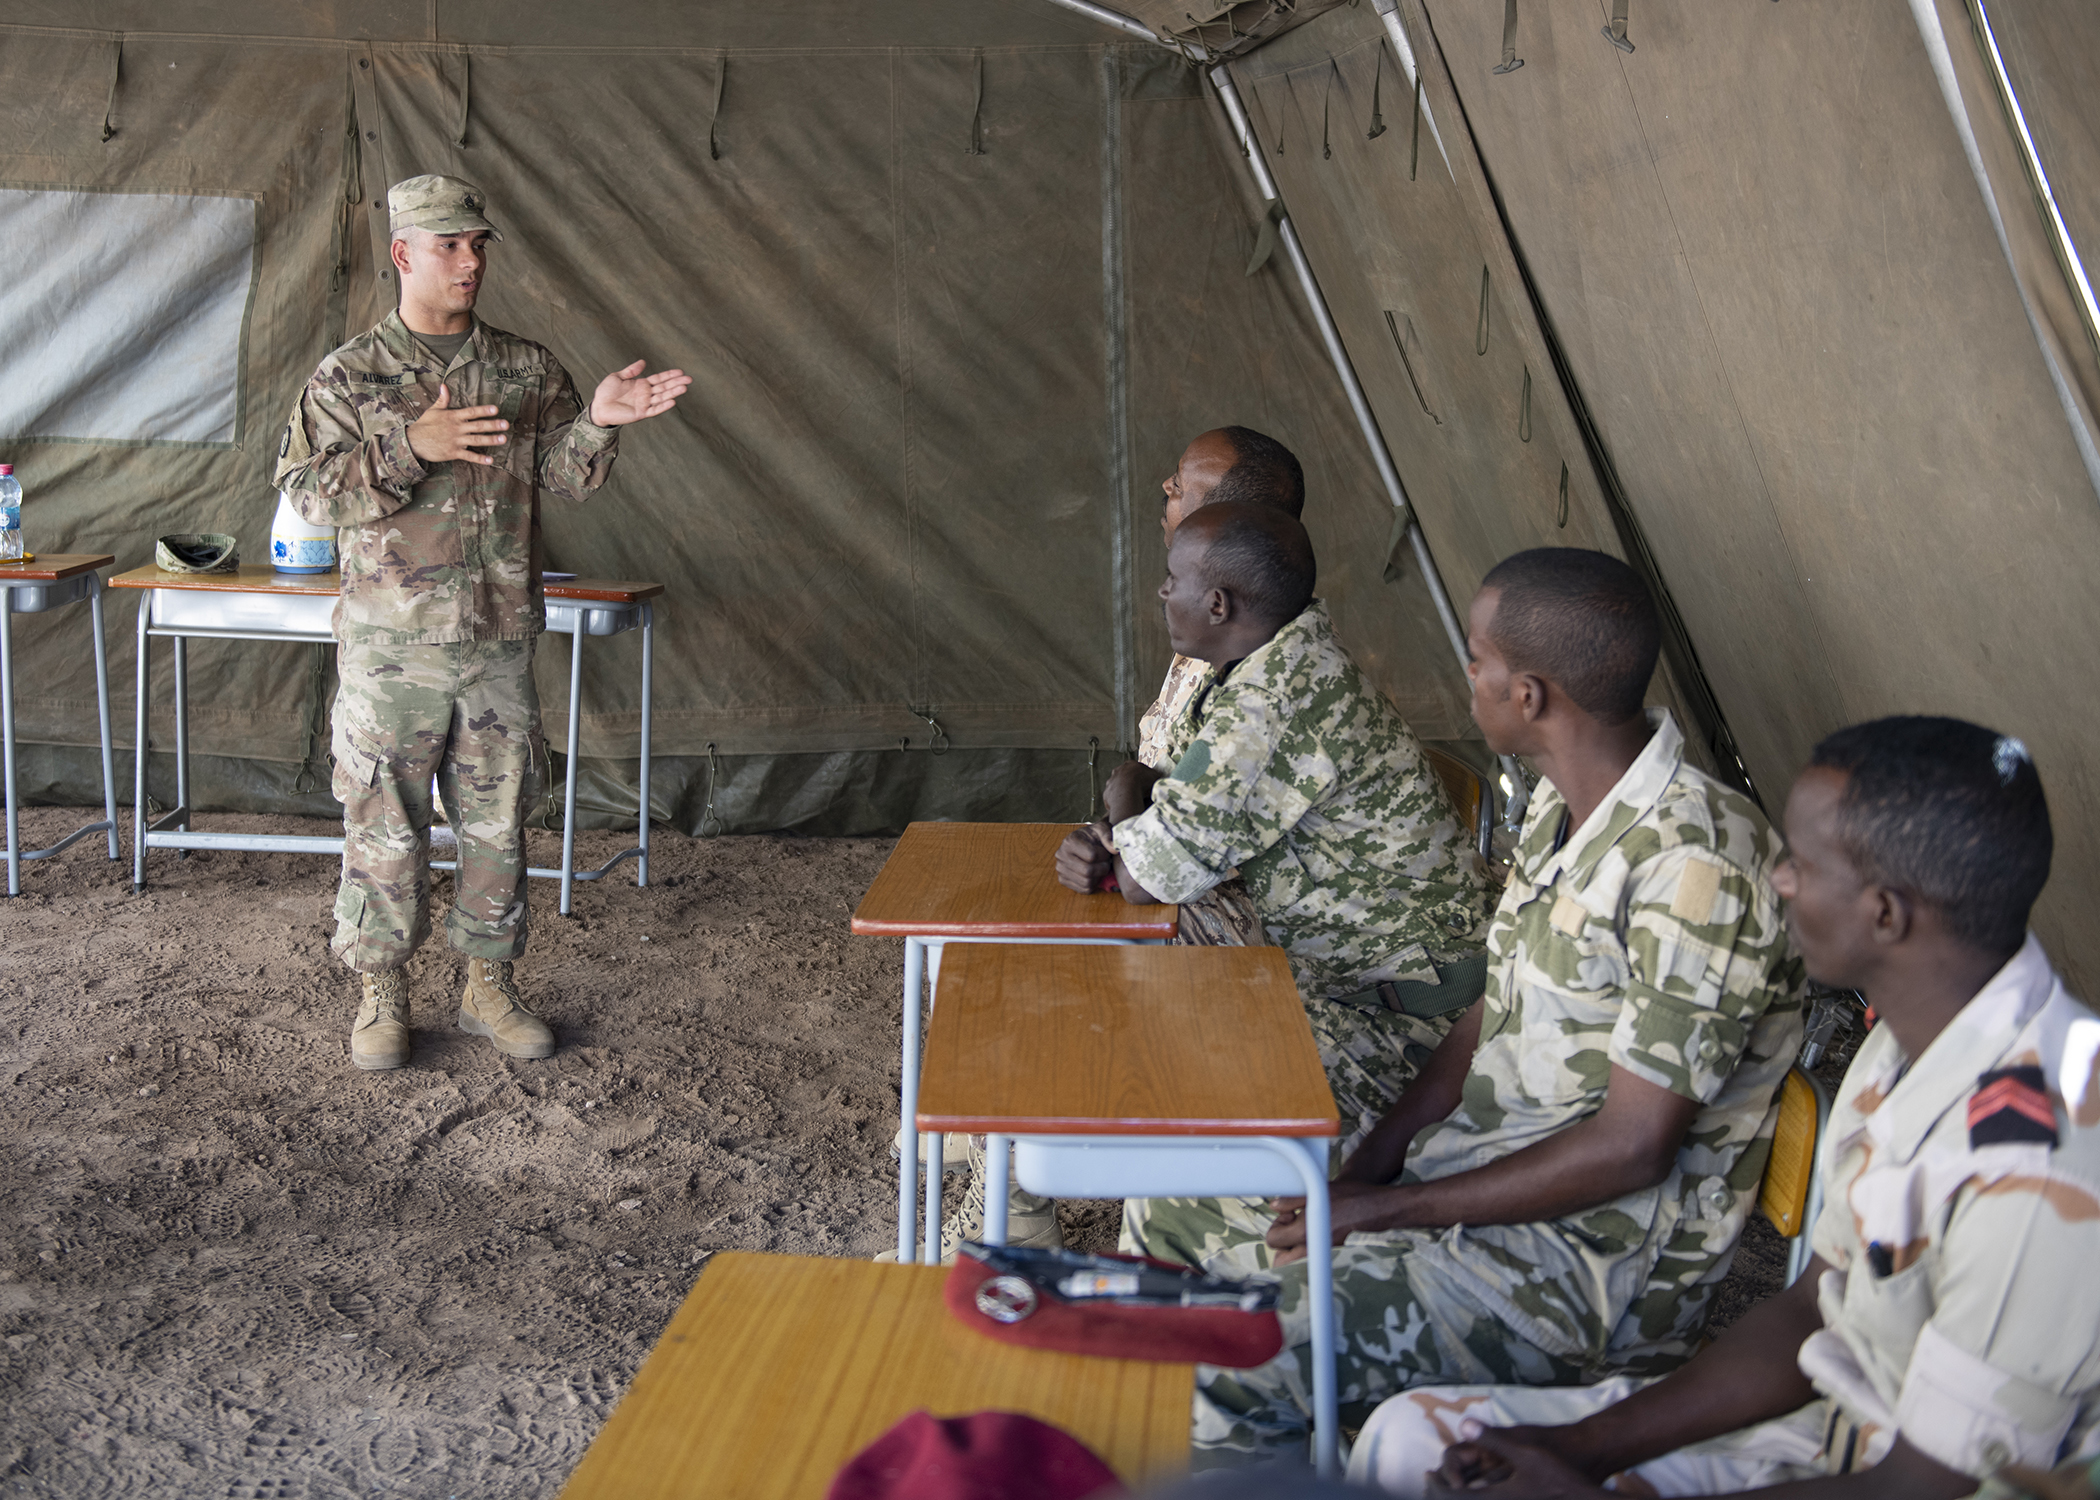 U.S. Army Staff Sgt. Jerry Alvarez, Combined Joint Task Force-Horn of Africa communications directorate NCO in charge, gives opening remarks during an Africa Data Sharing Network (ADSN), version two, information exchange with Djibouti Army (FAD) soldiers at FAD Headquarters, Djibouti, Dec. 26, 2018. The ADSN works as an internal network that the African Union Mission in Somalia troop-contributing countries can use to communicate and share information amongst each other. (U.S. Air Force photo by Tech. Sgt. Shawn Nickel)